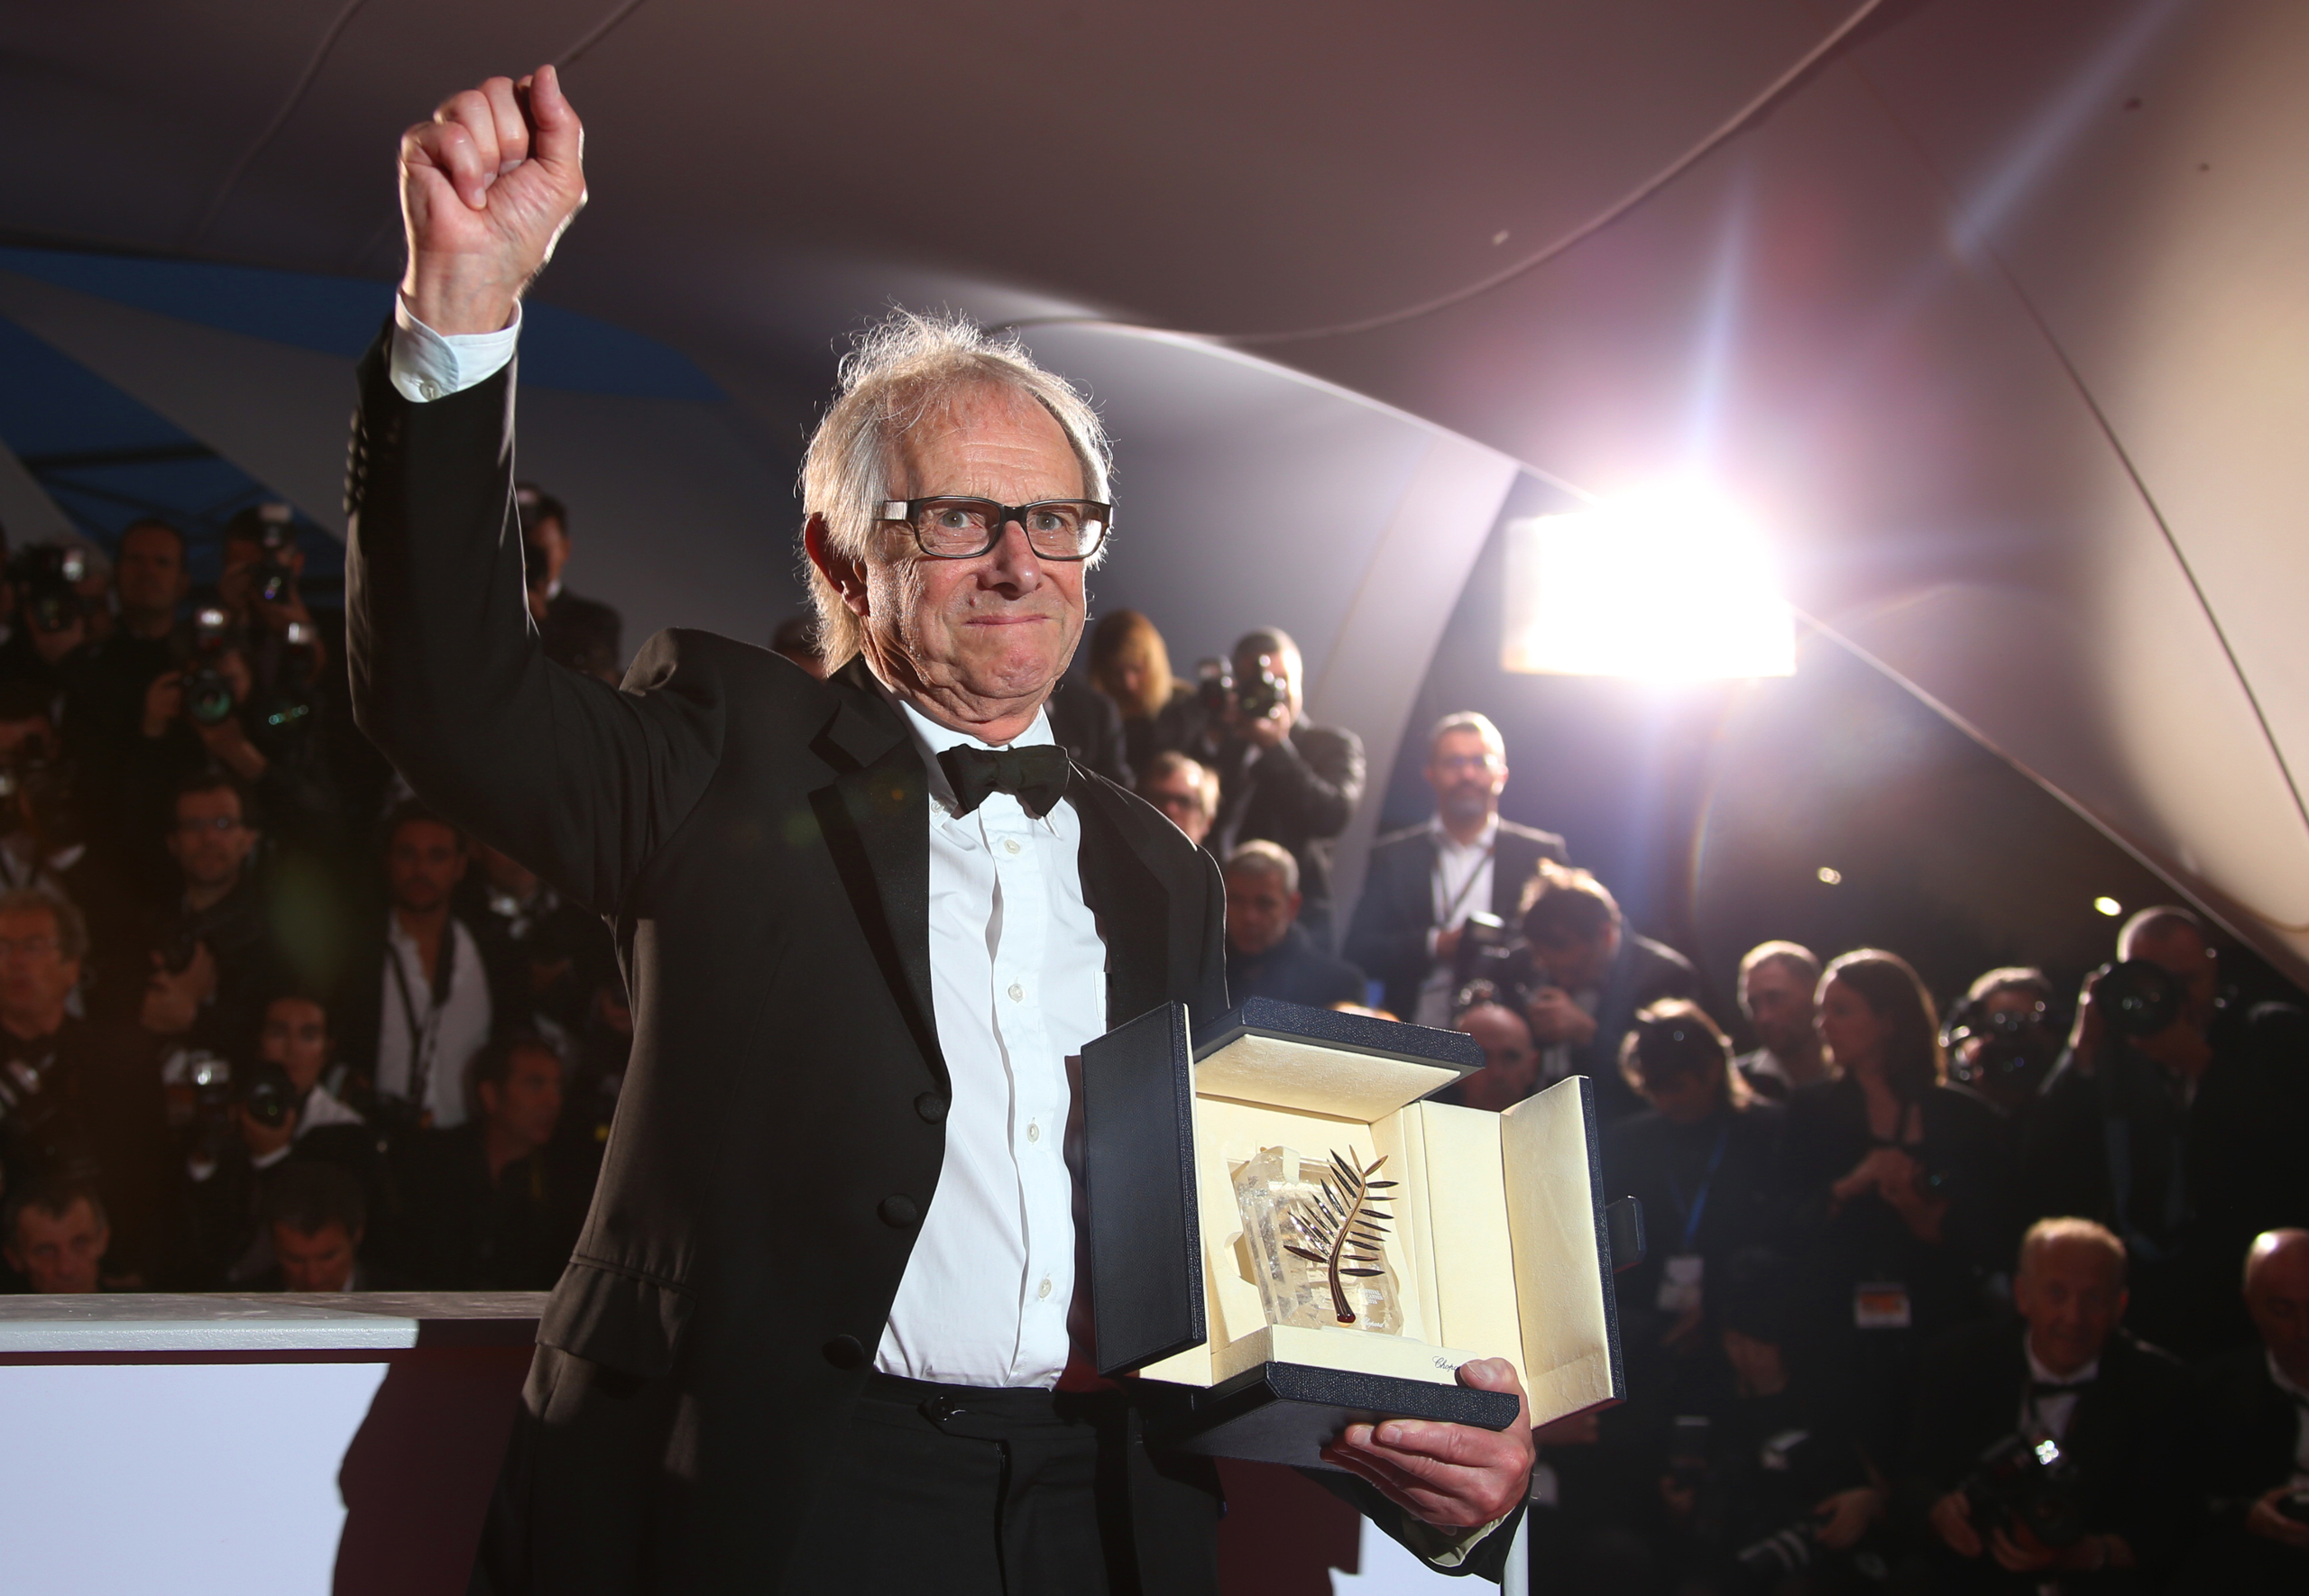 Director Ken Loach poses for photographers with the Palme d'Or for his film I, Daniel Blake during the photo call following the awards ceremony at the 69th international film festival, Cannes, France, on May 22, 2016.